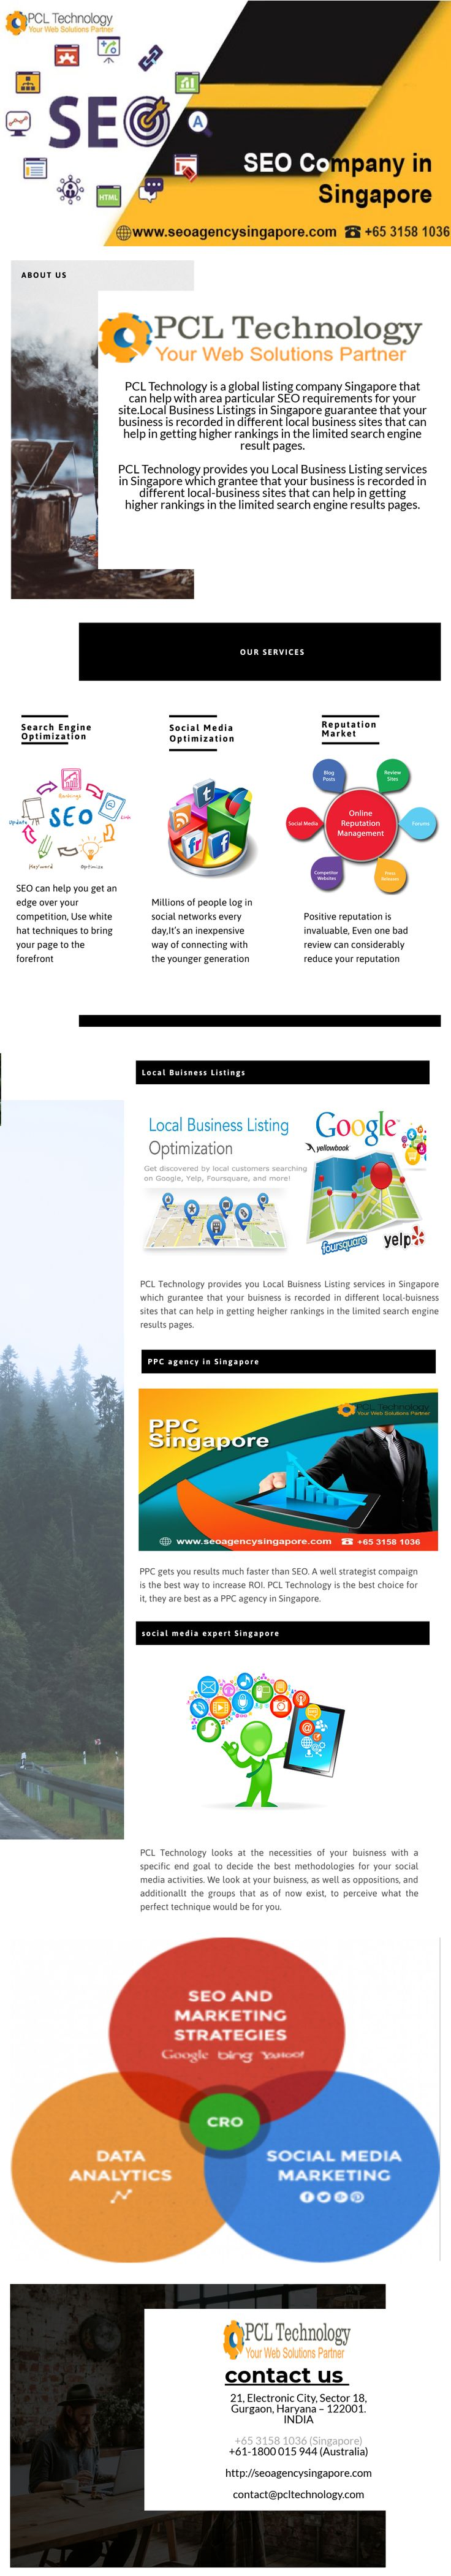 PCL Technology provides a best social media expert in